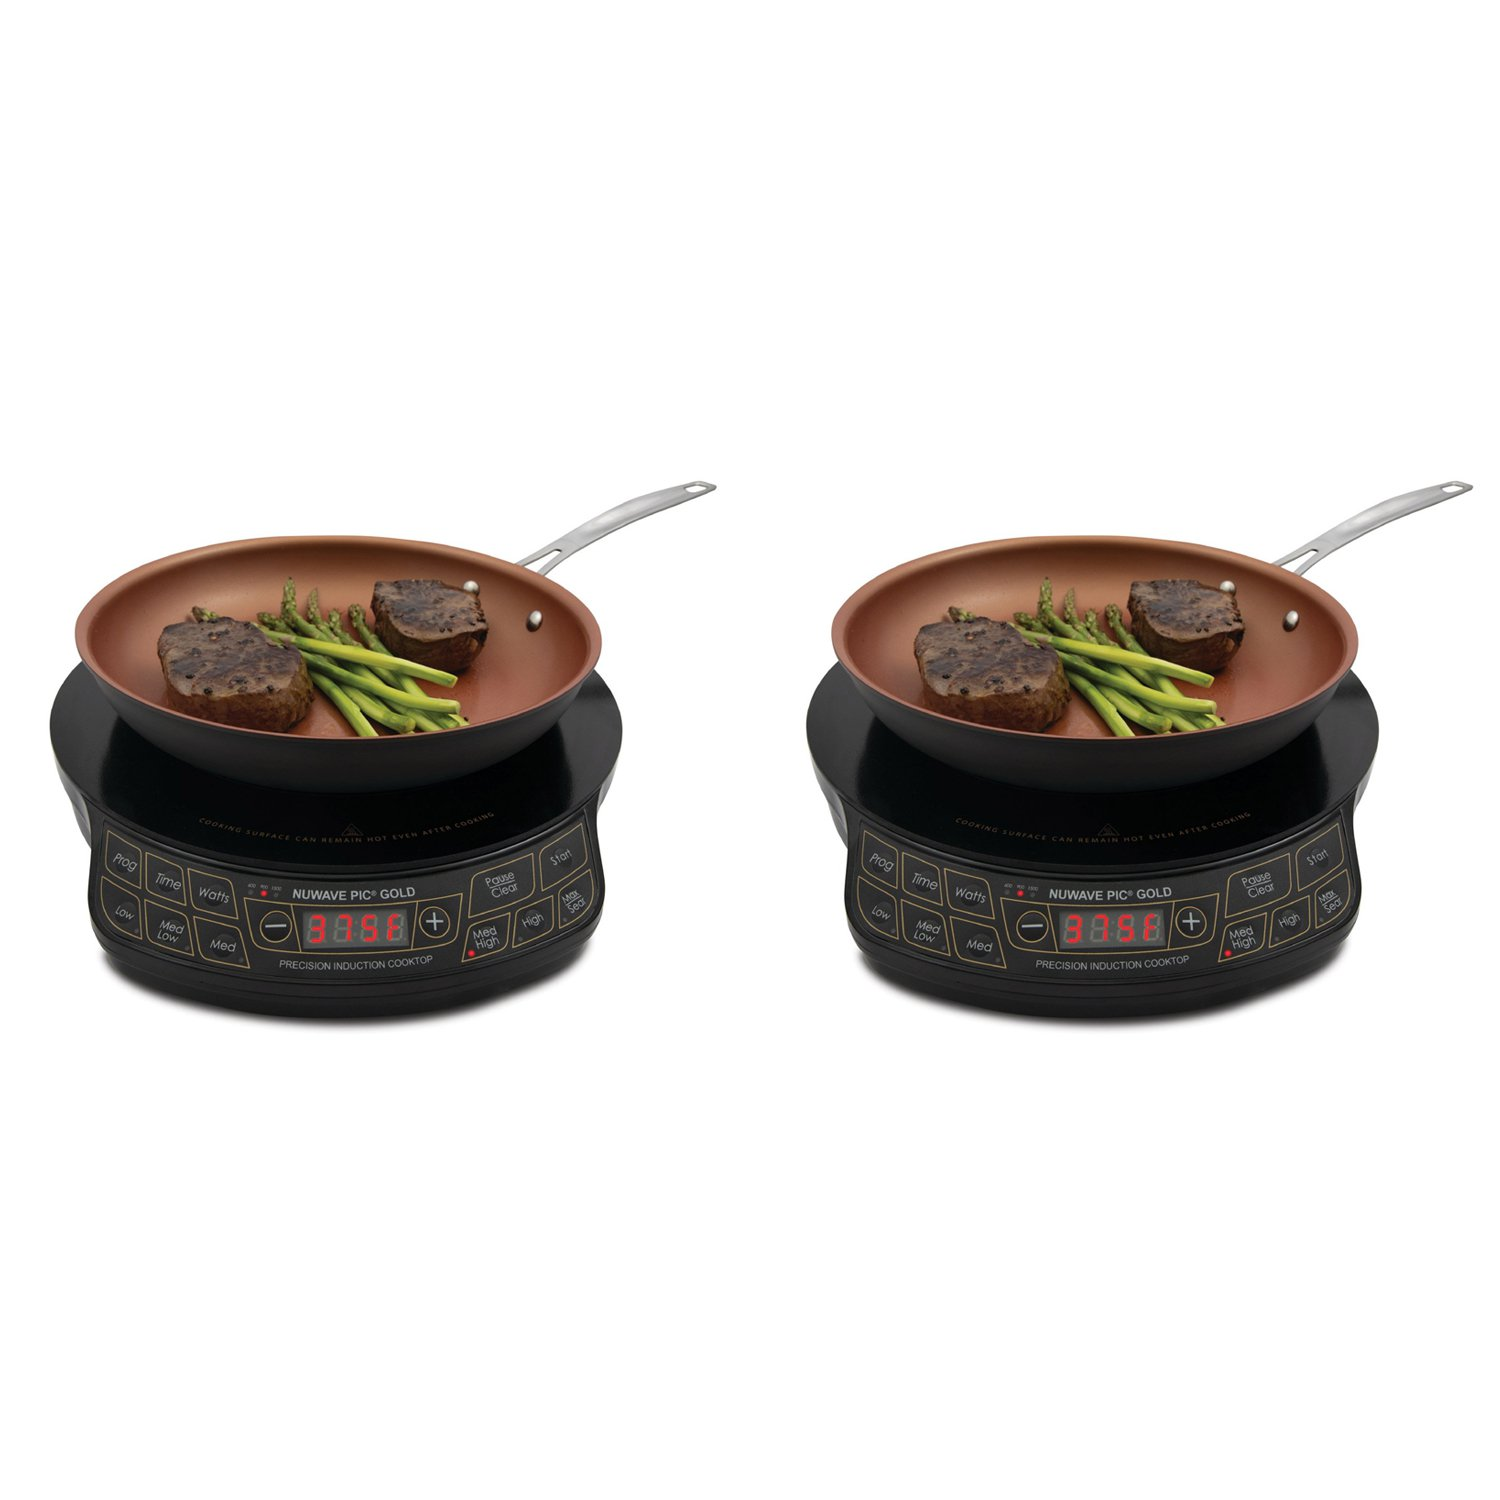 NuWave PIC 1500 Watt Precision Induction Cooktop w 10.5 Inch Frying Pan (2 Pack)